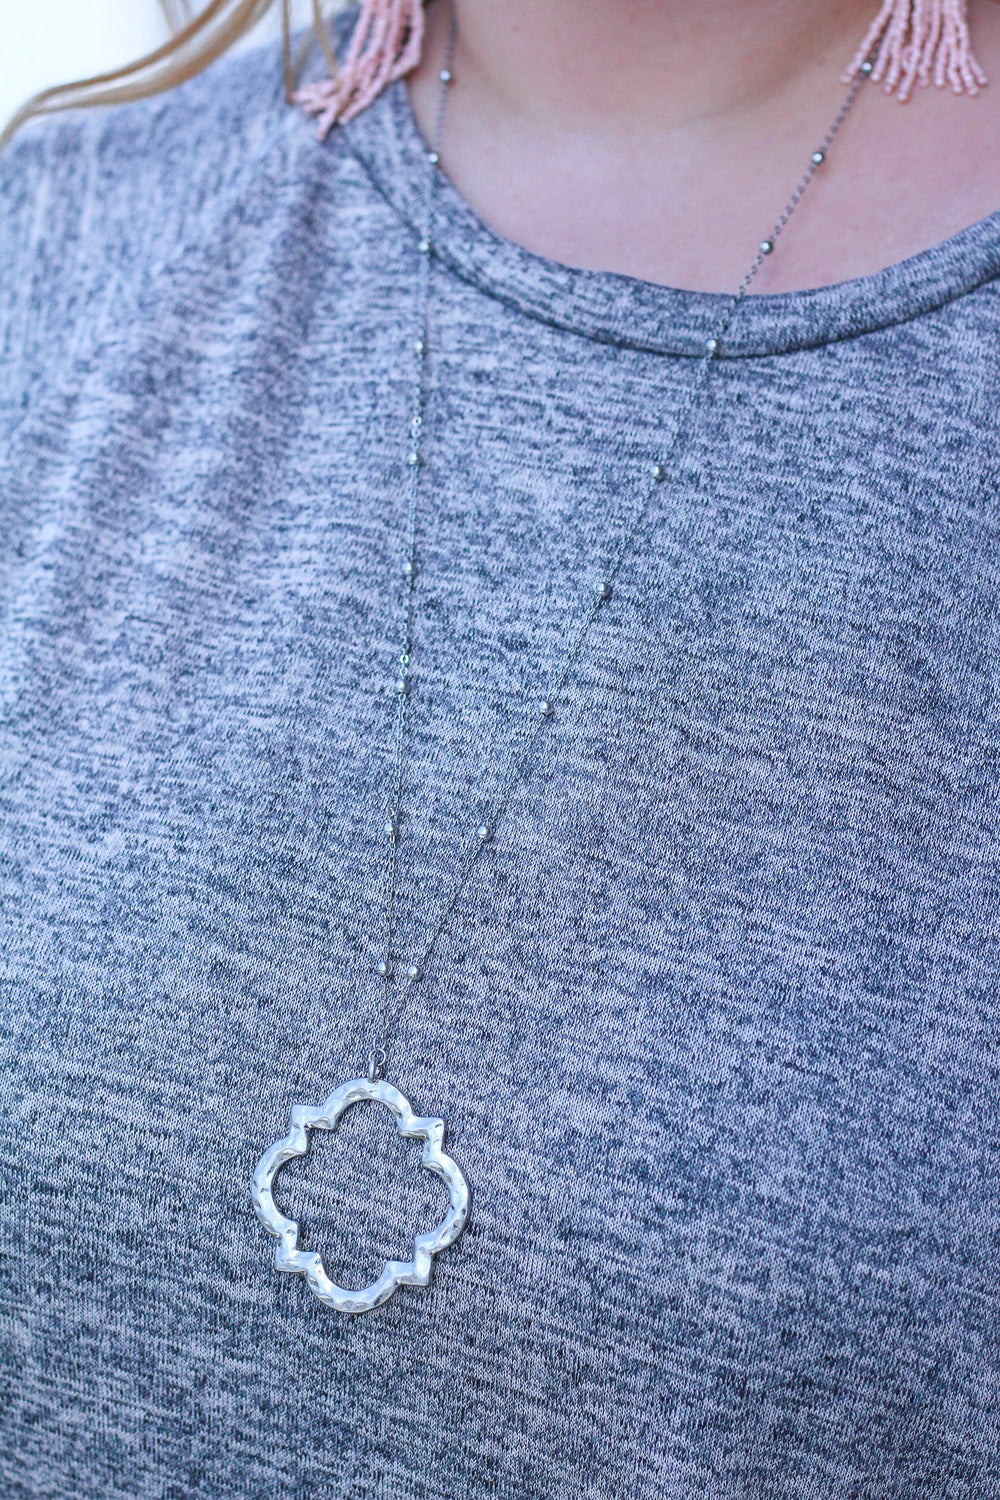 Hammered Quatrefoil Pendant Necklace - Silver